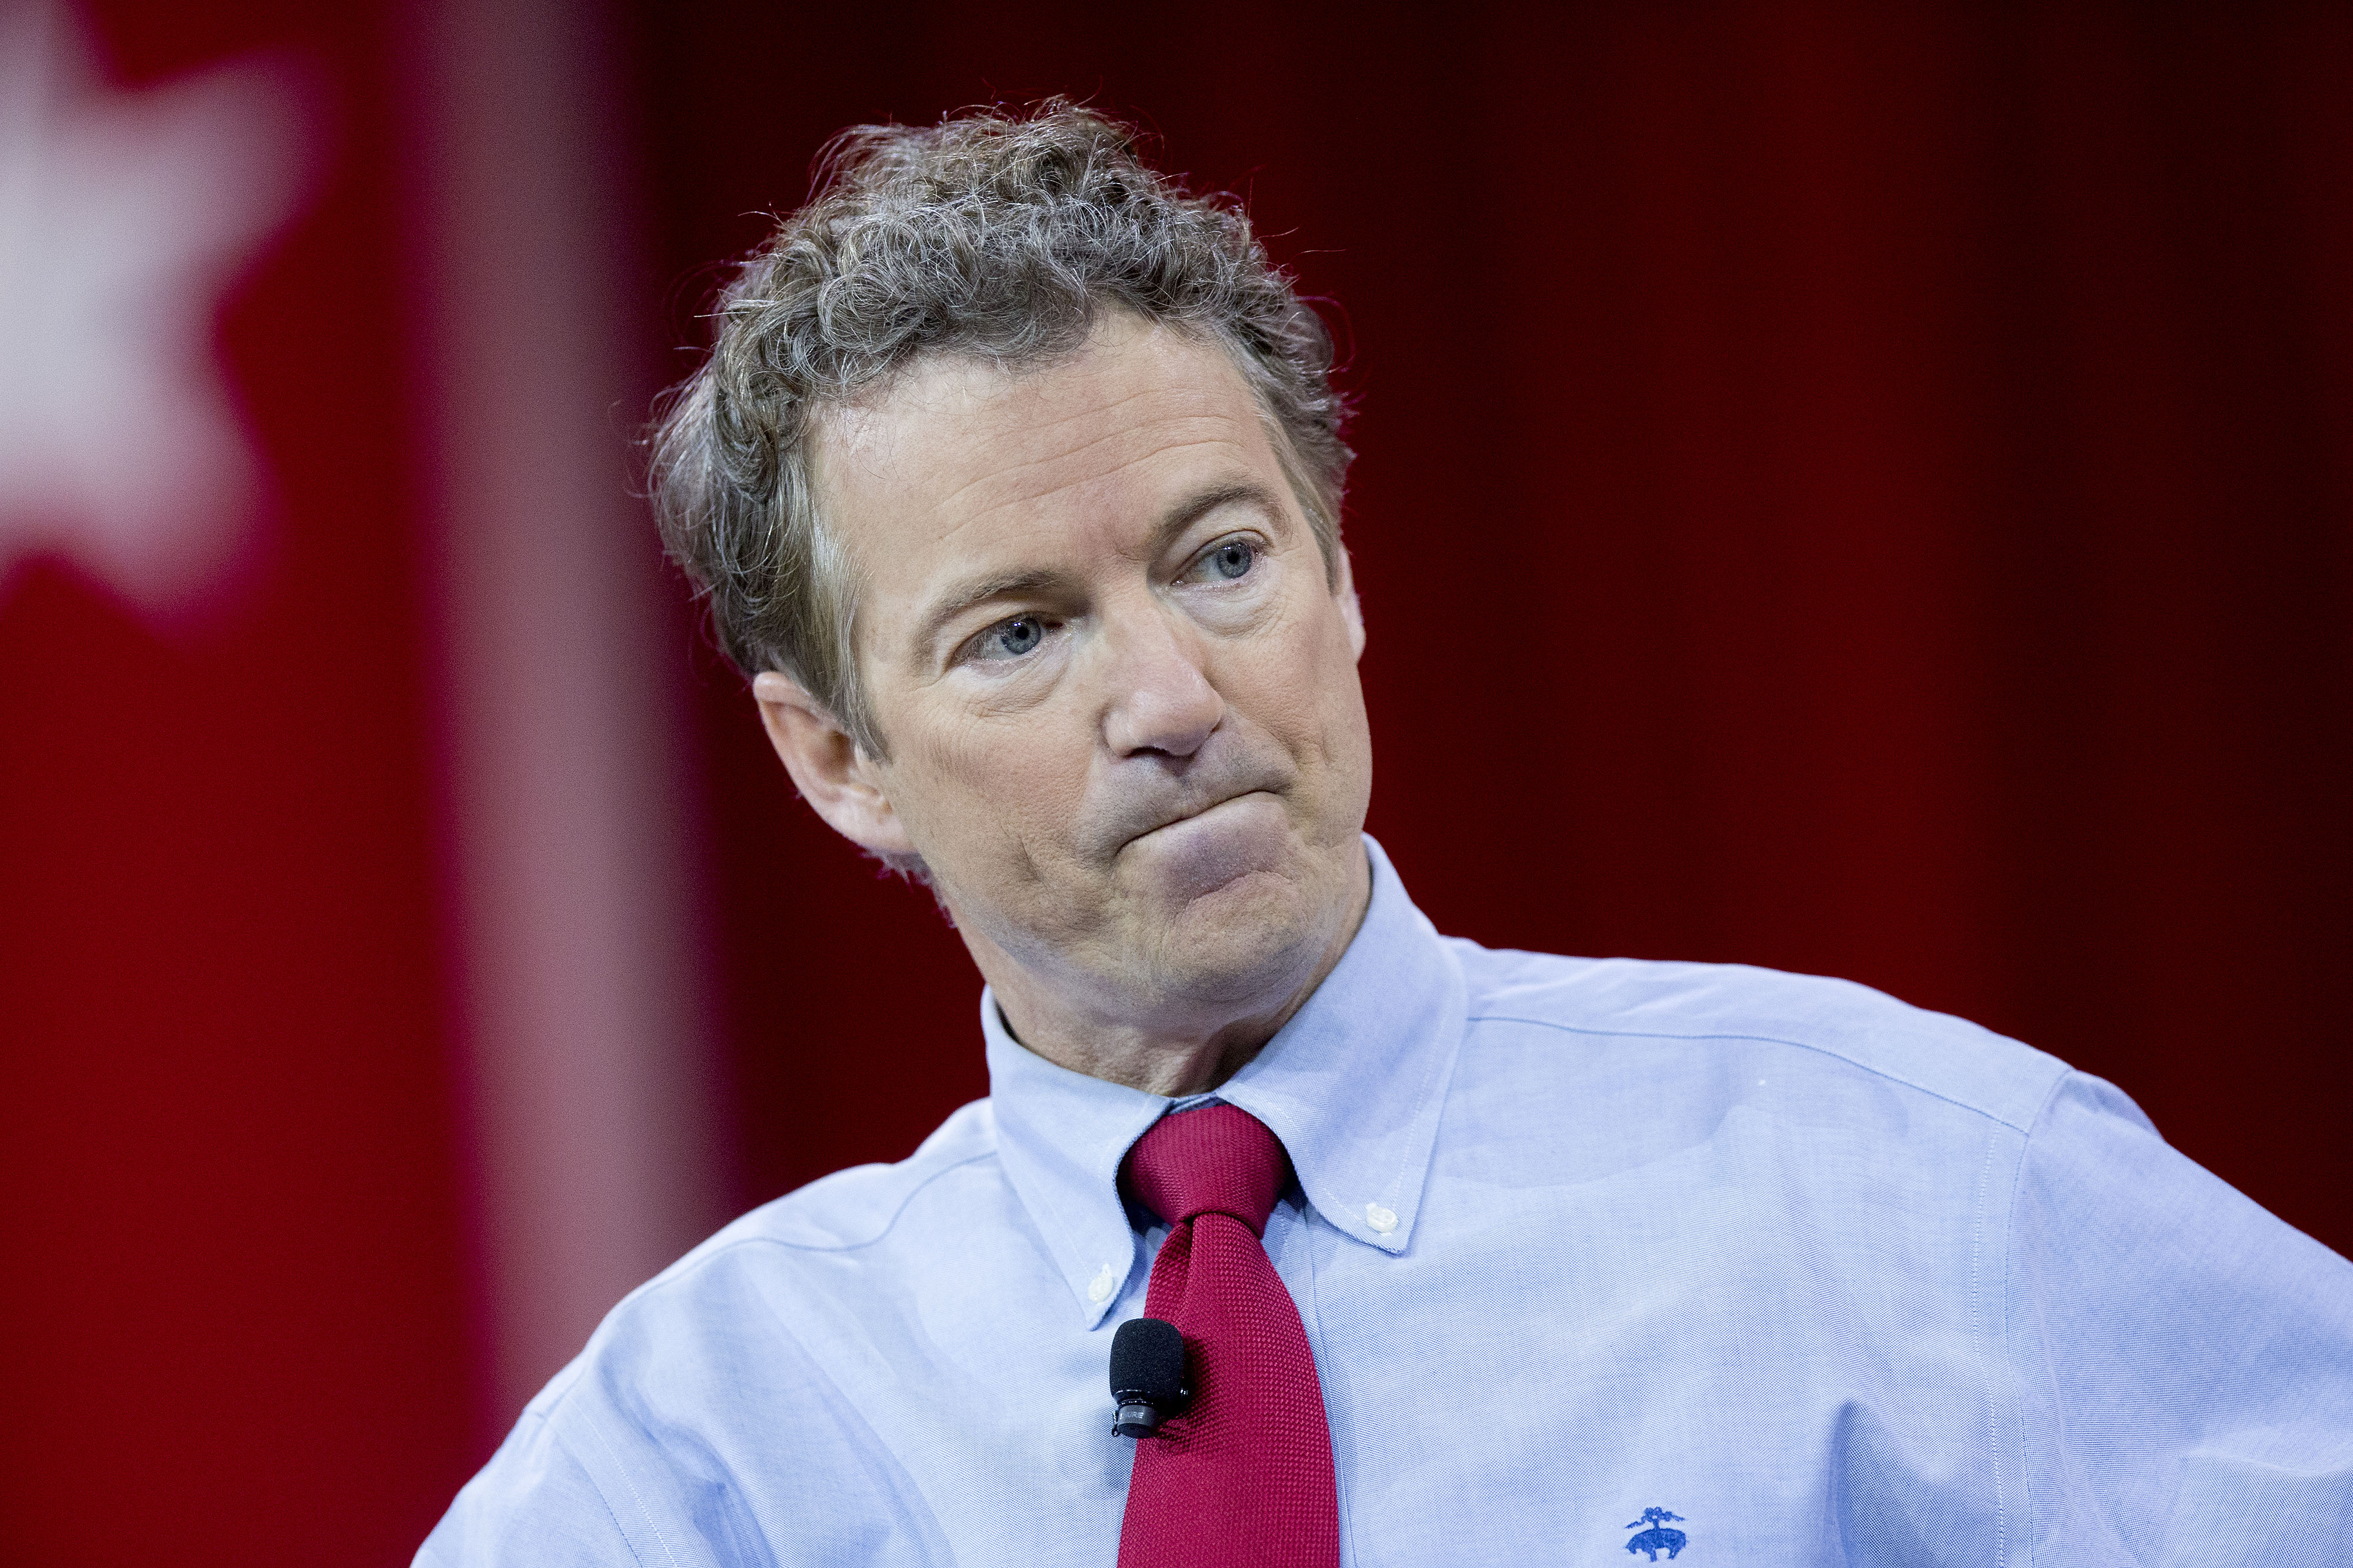 Senator Rand Paul, a Republican from Kentucky, listens to a question during an interview at the Conservative Political Action Conference (CPAC) in National Harbor, Maryland, Feb. 27, 2015.